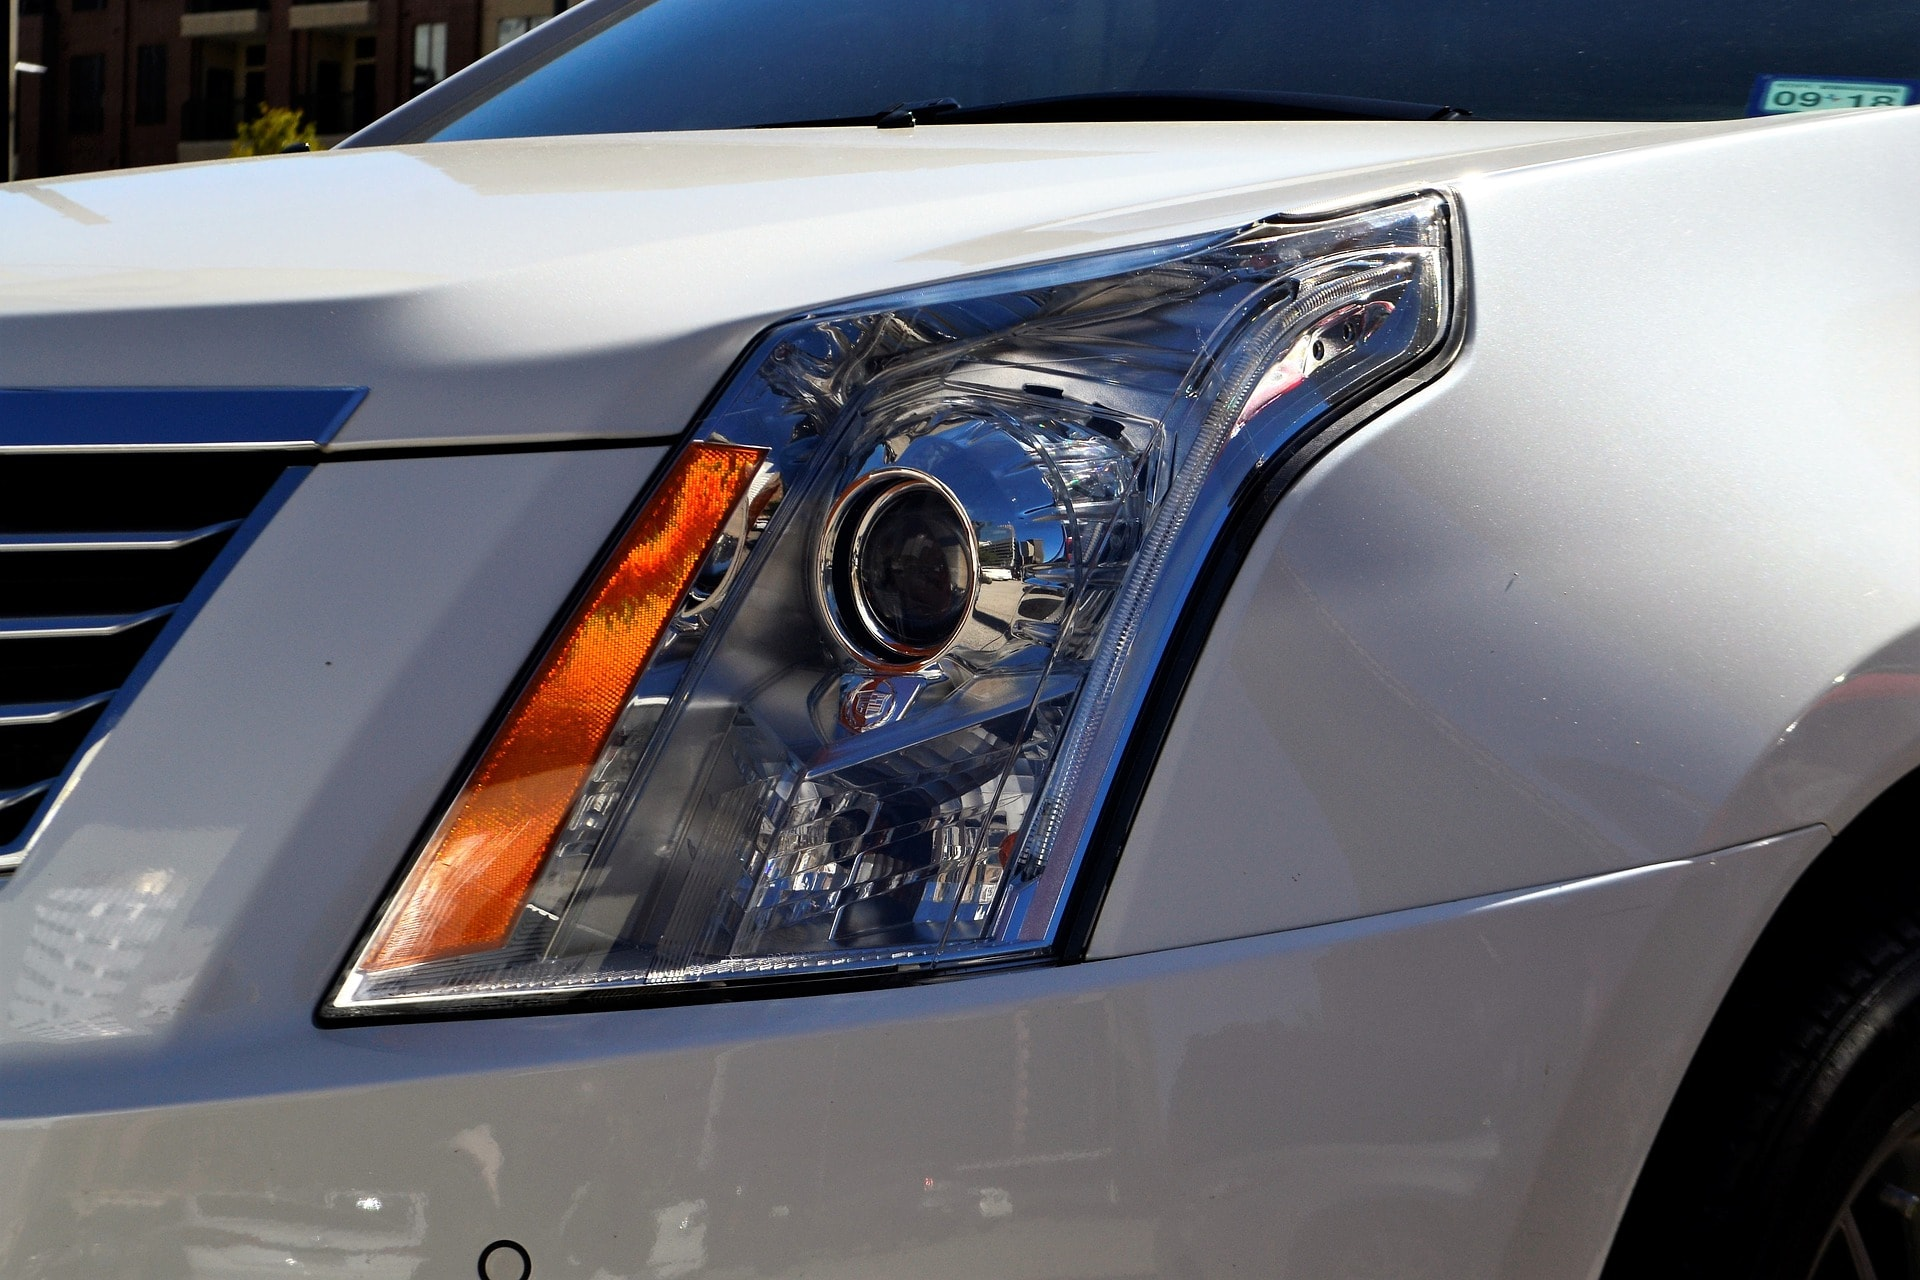 An Up-Close With the 2022 Cadillac XT6